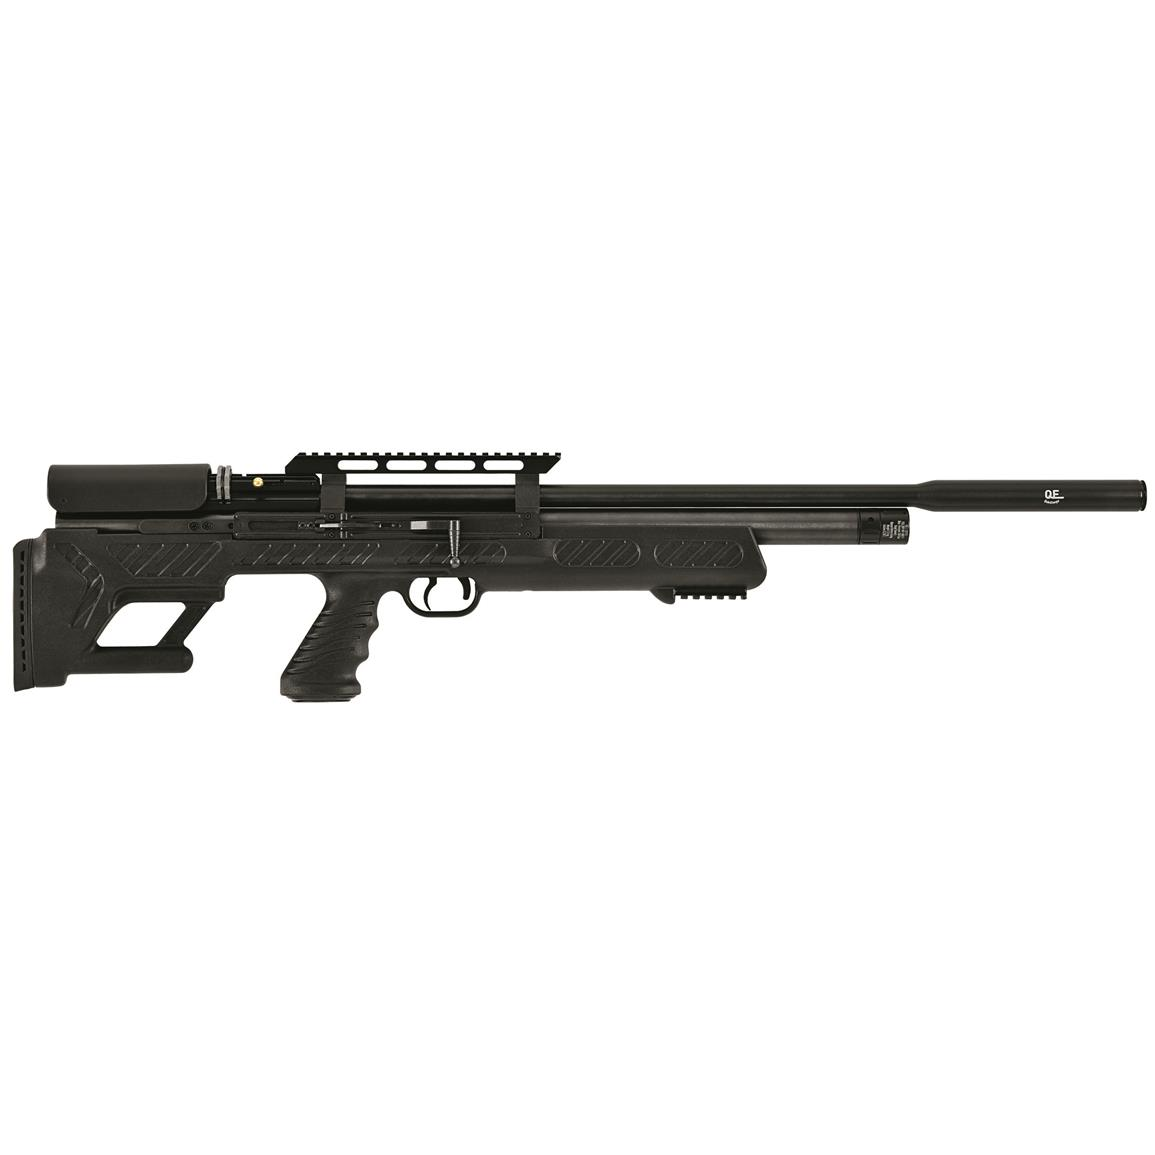 "Hatsan BullBoss Quiet Energy PCP Air Rifle, Side-lever, 23"" barrel"